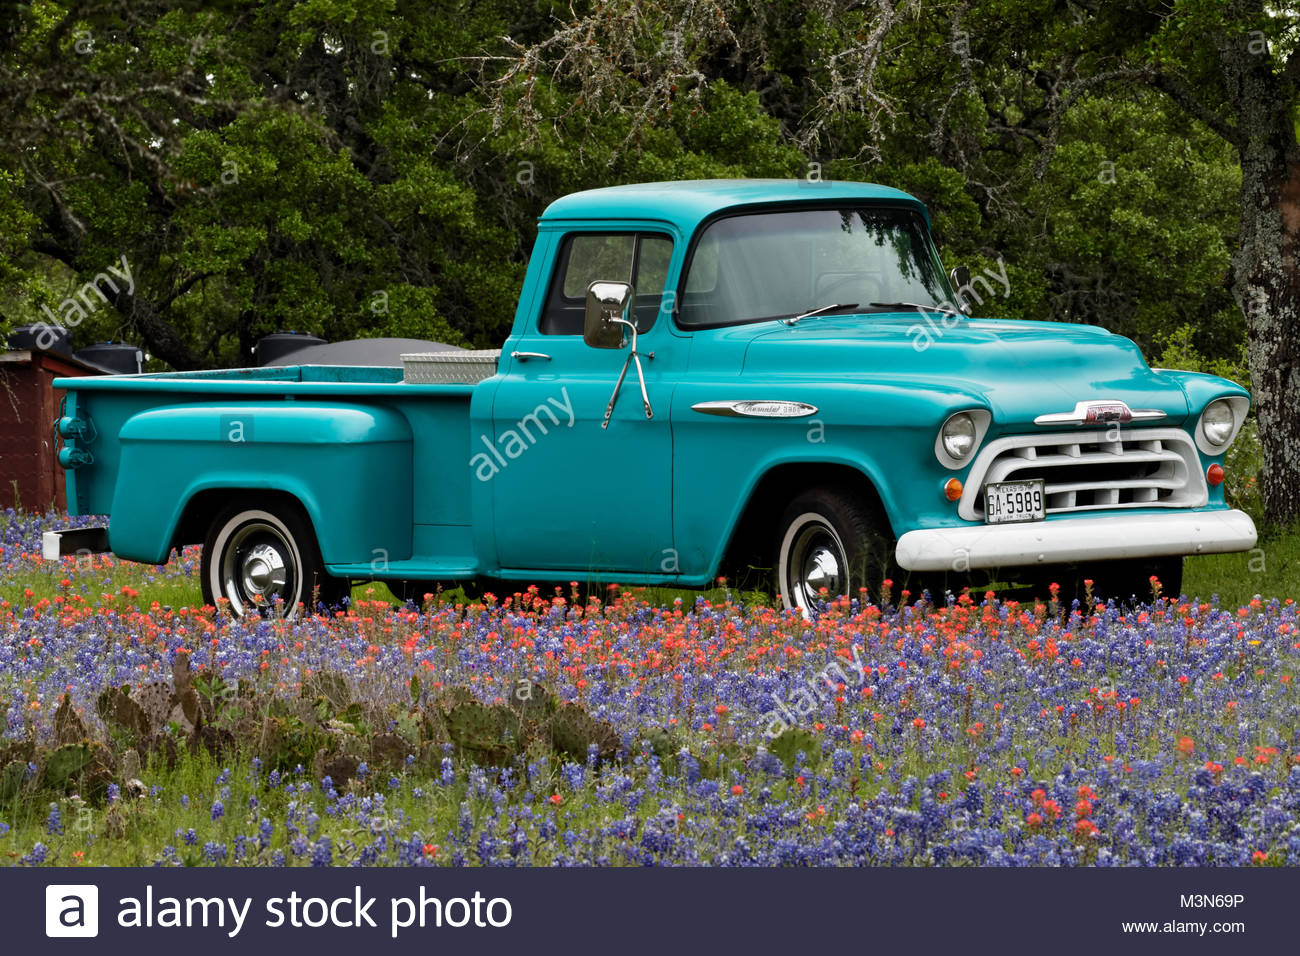 1957 Chevrolet 3200 Pick Up Truck In Wild Flowers Texas Stock